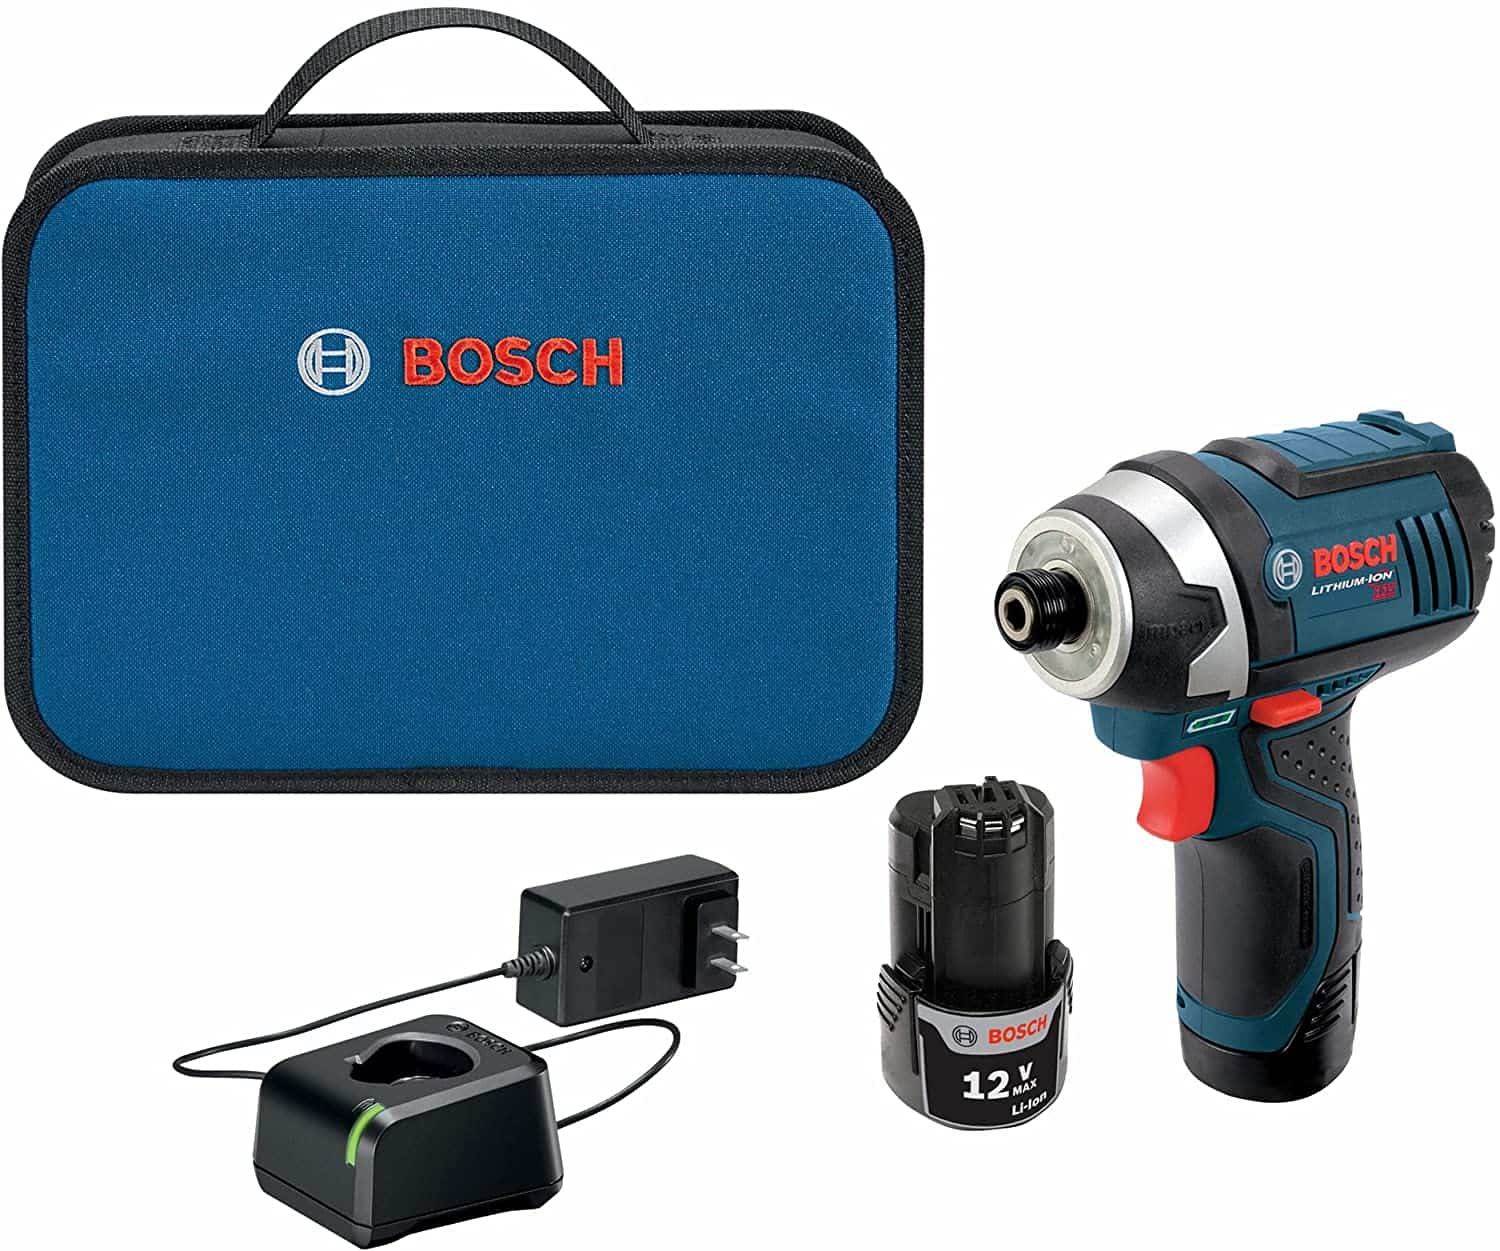 Best overall 12v impact driver- BOSCH PS41-2A 12V Hex Impact Driver Kit complete set